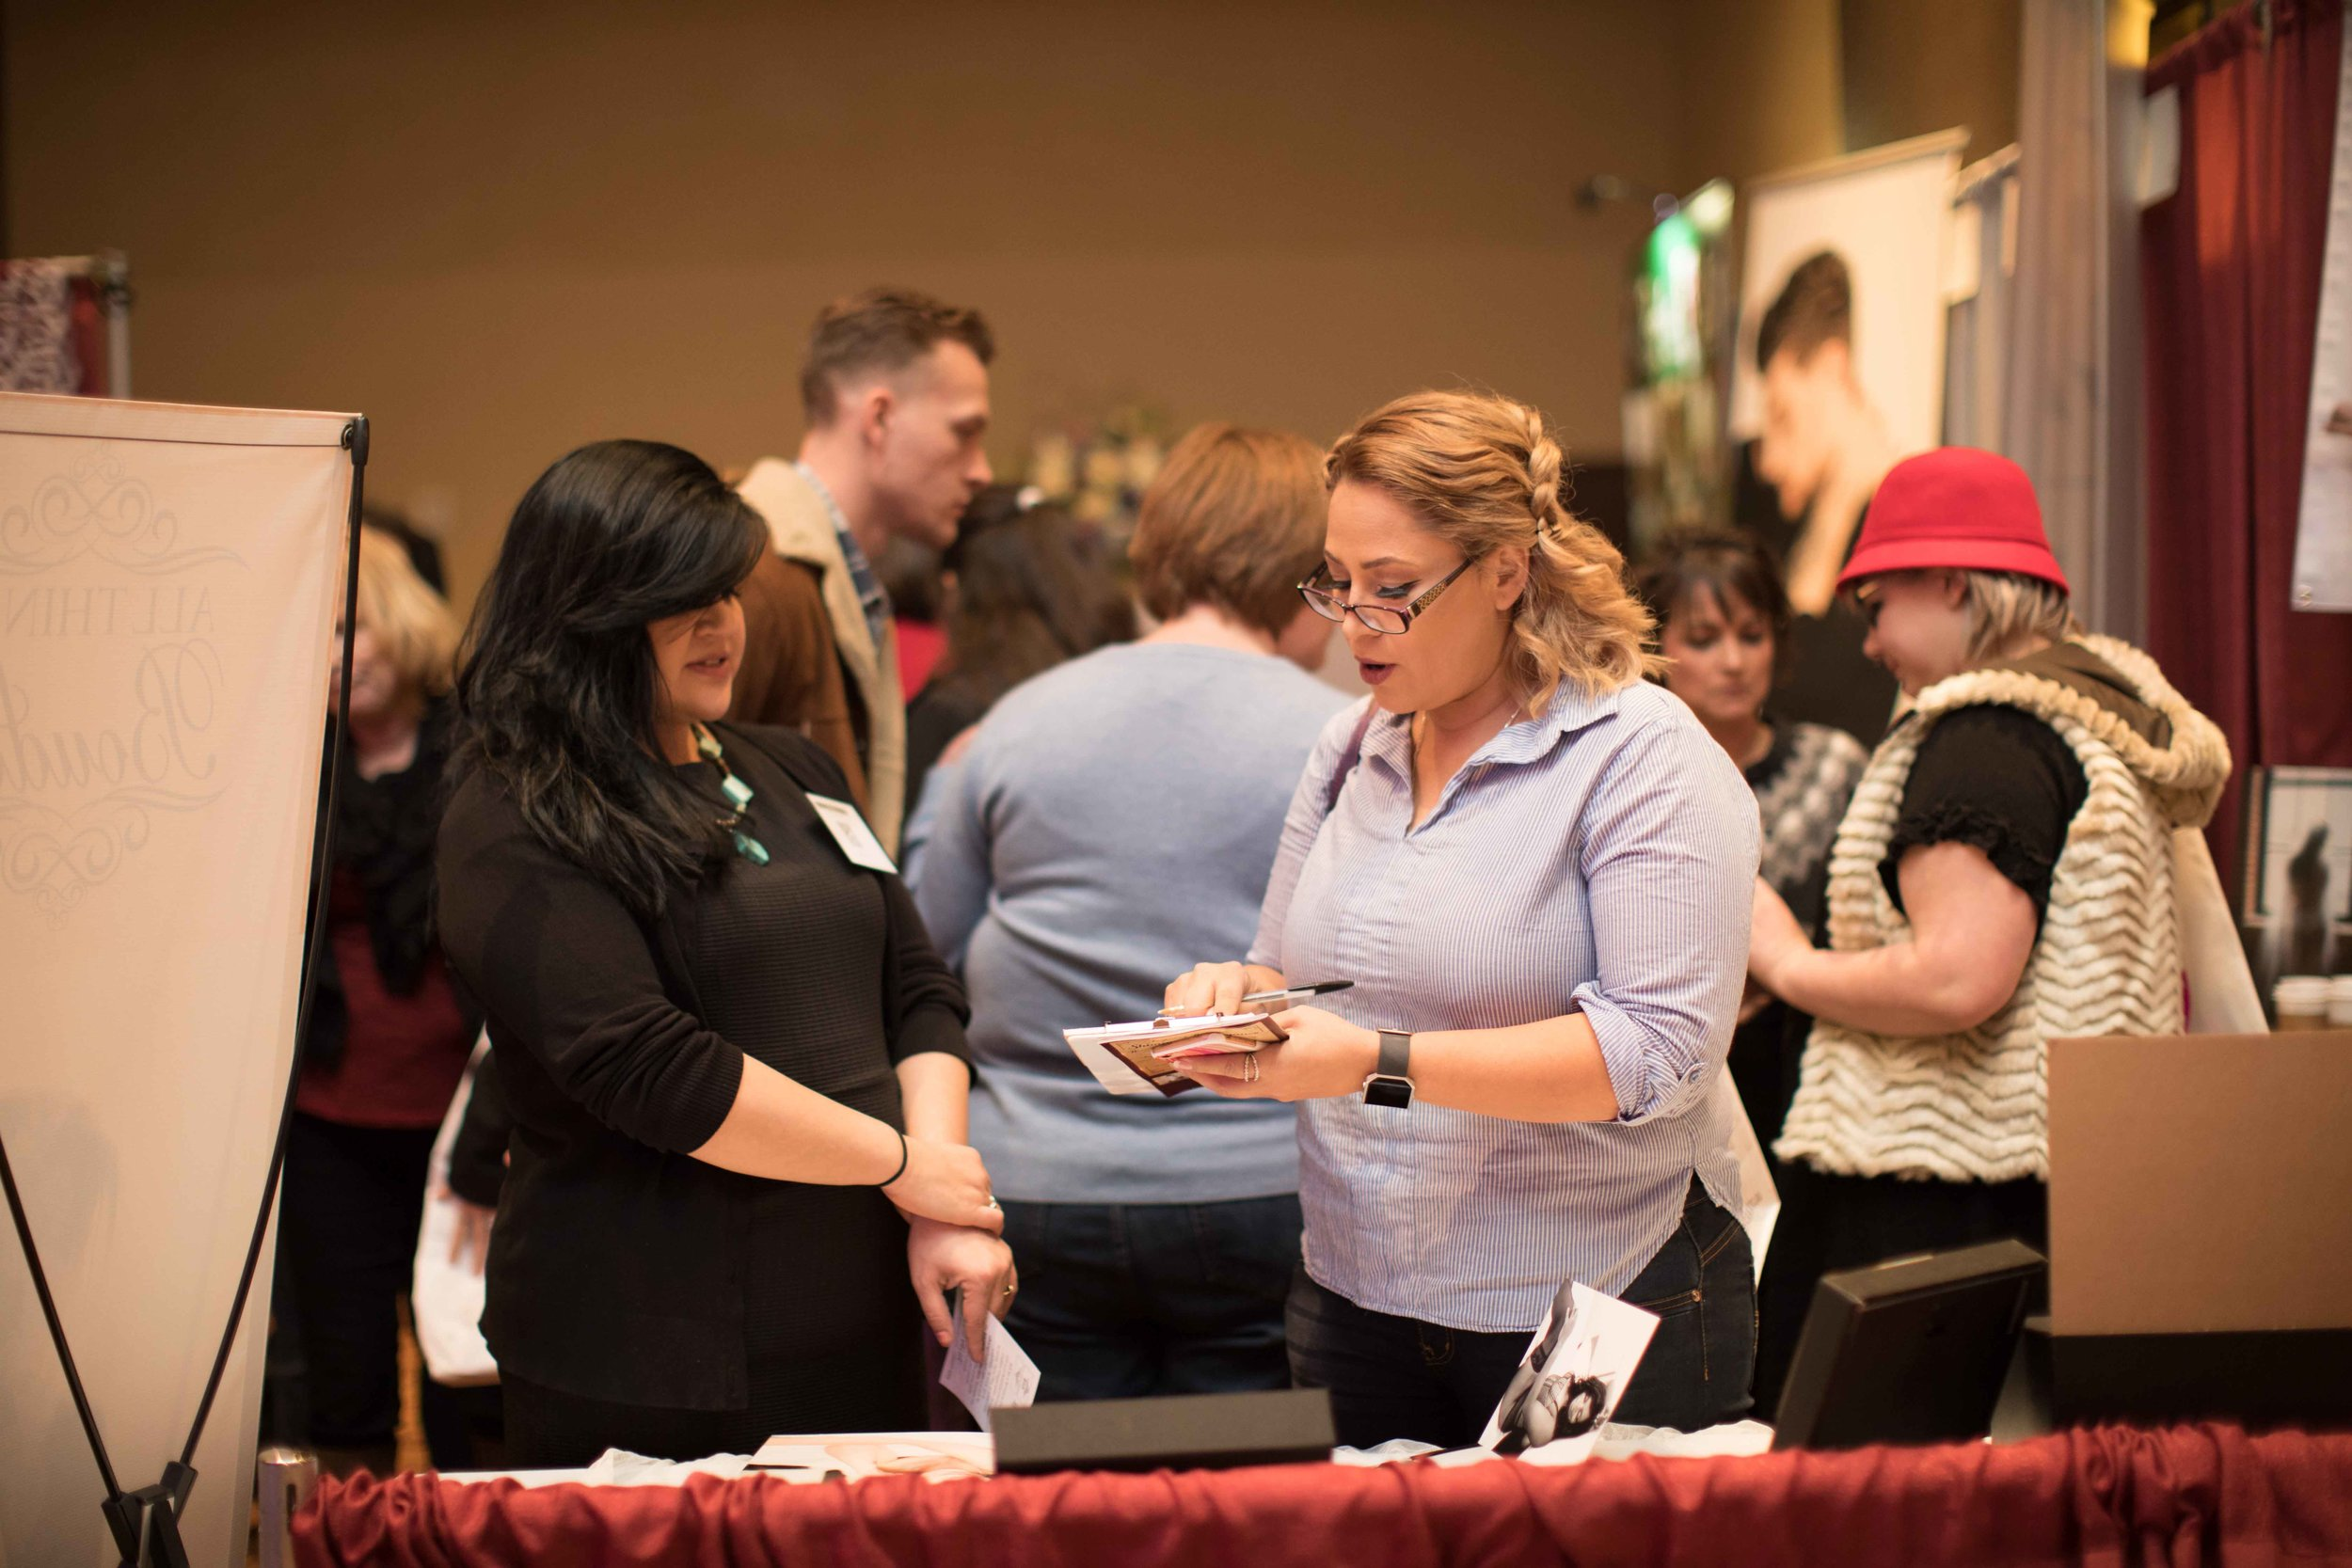 NM Wed Expo wedding planning.jpg